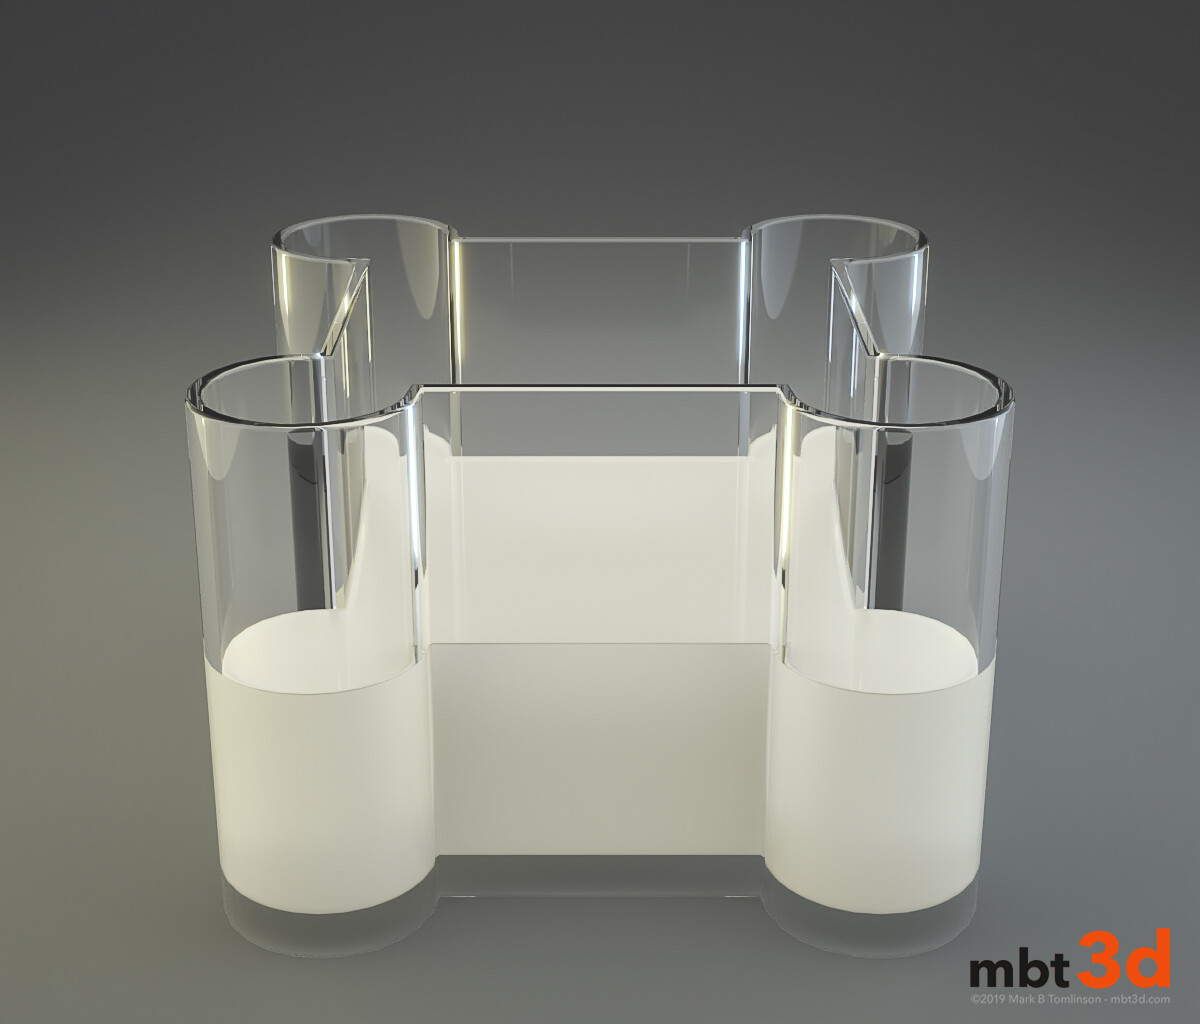 Vase: 2 Initial liquid test with low refraction samples and no SSS